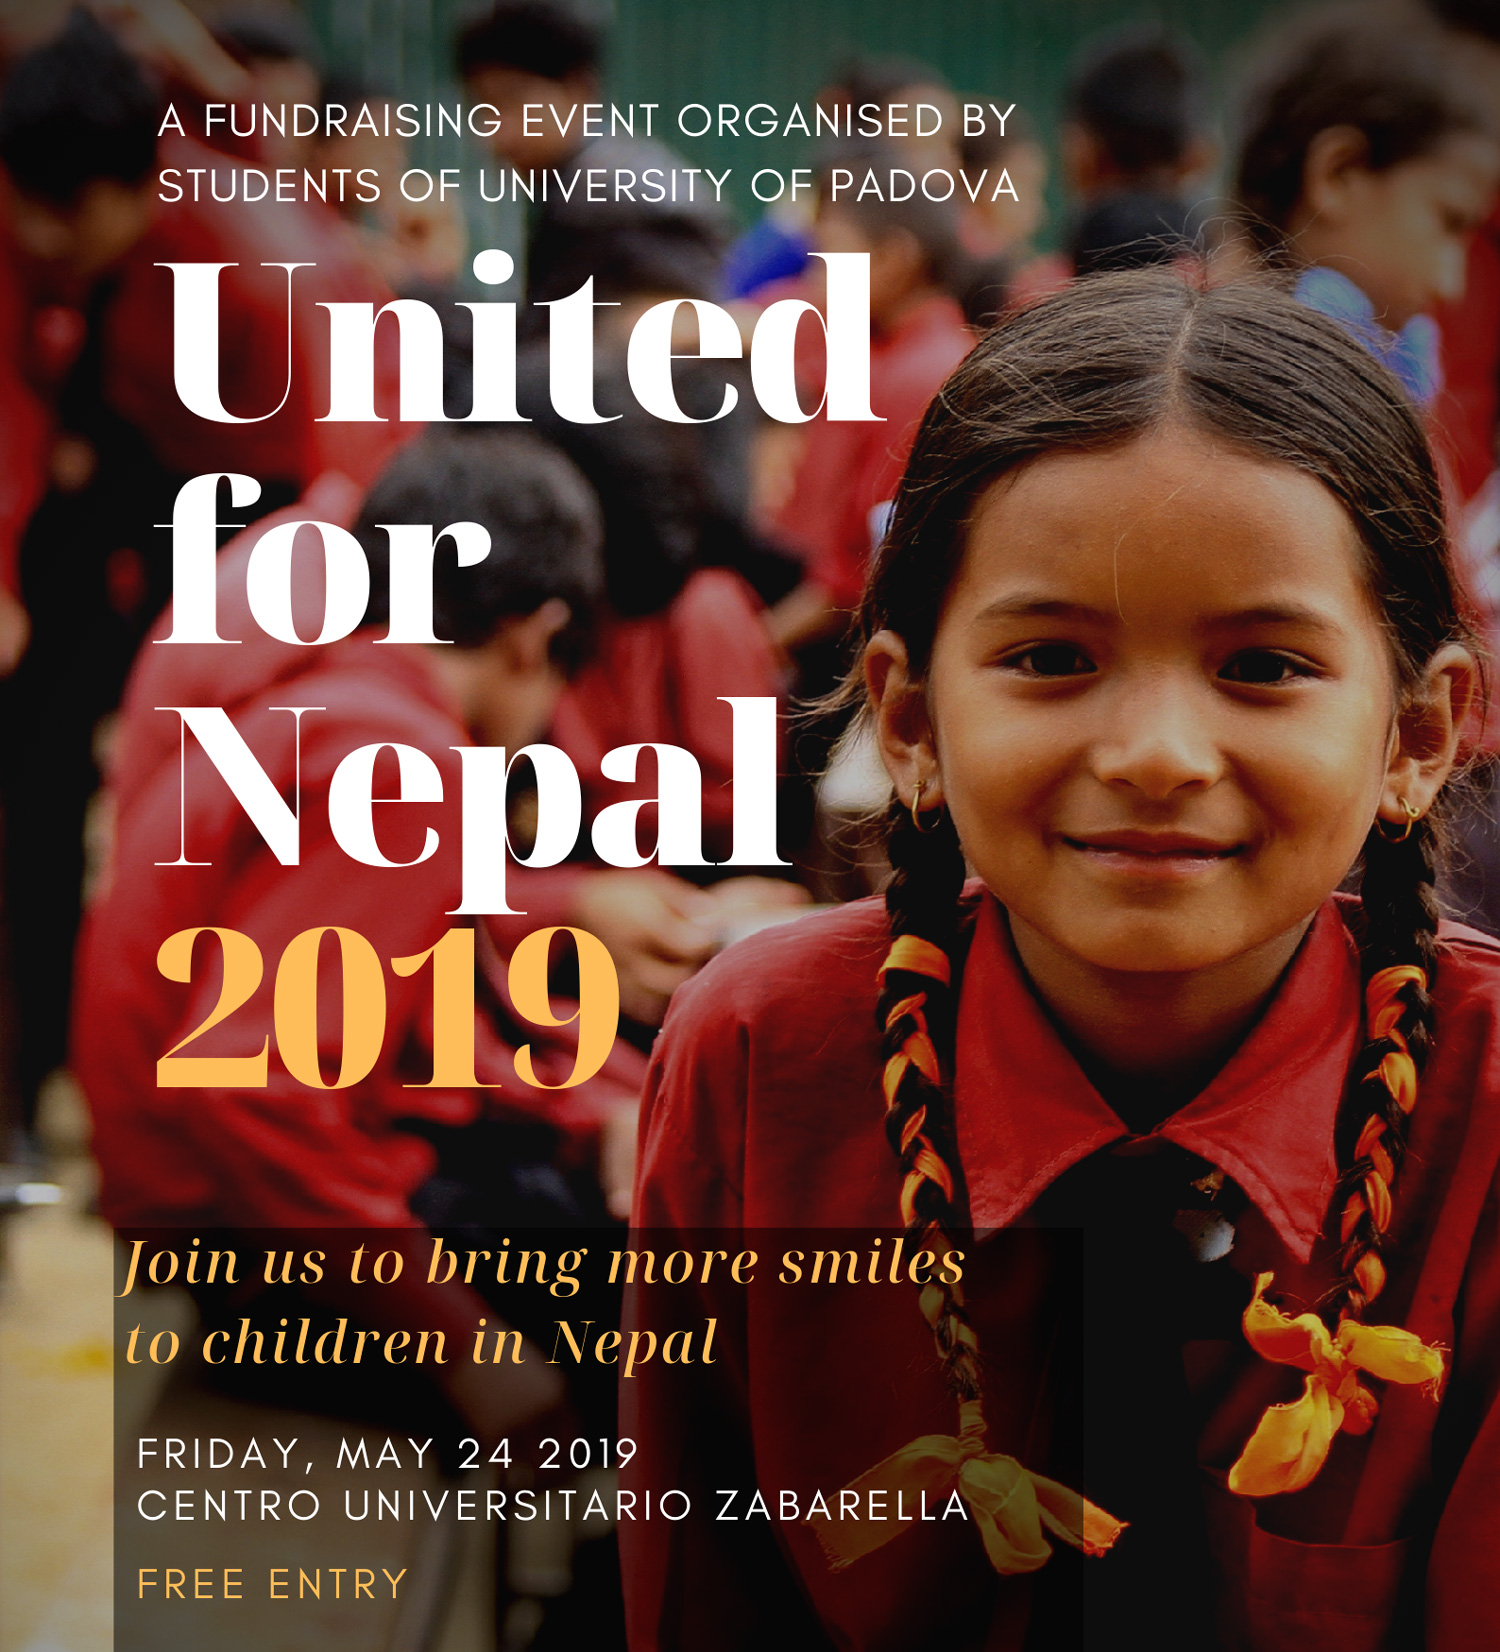 United for Nepal 2019